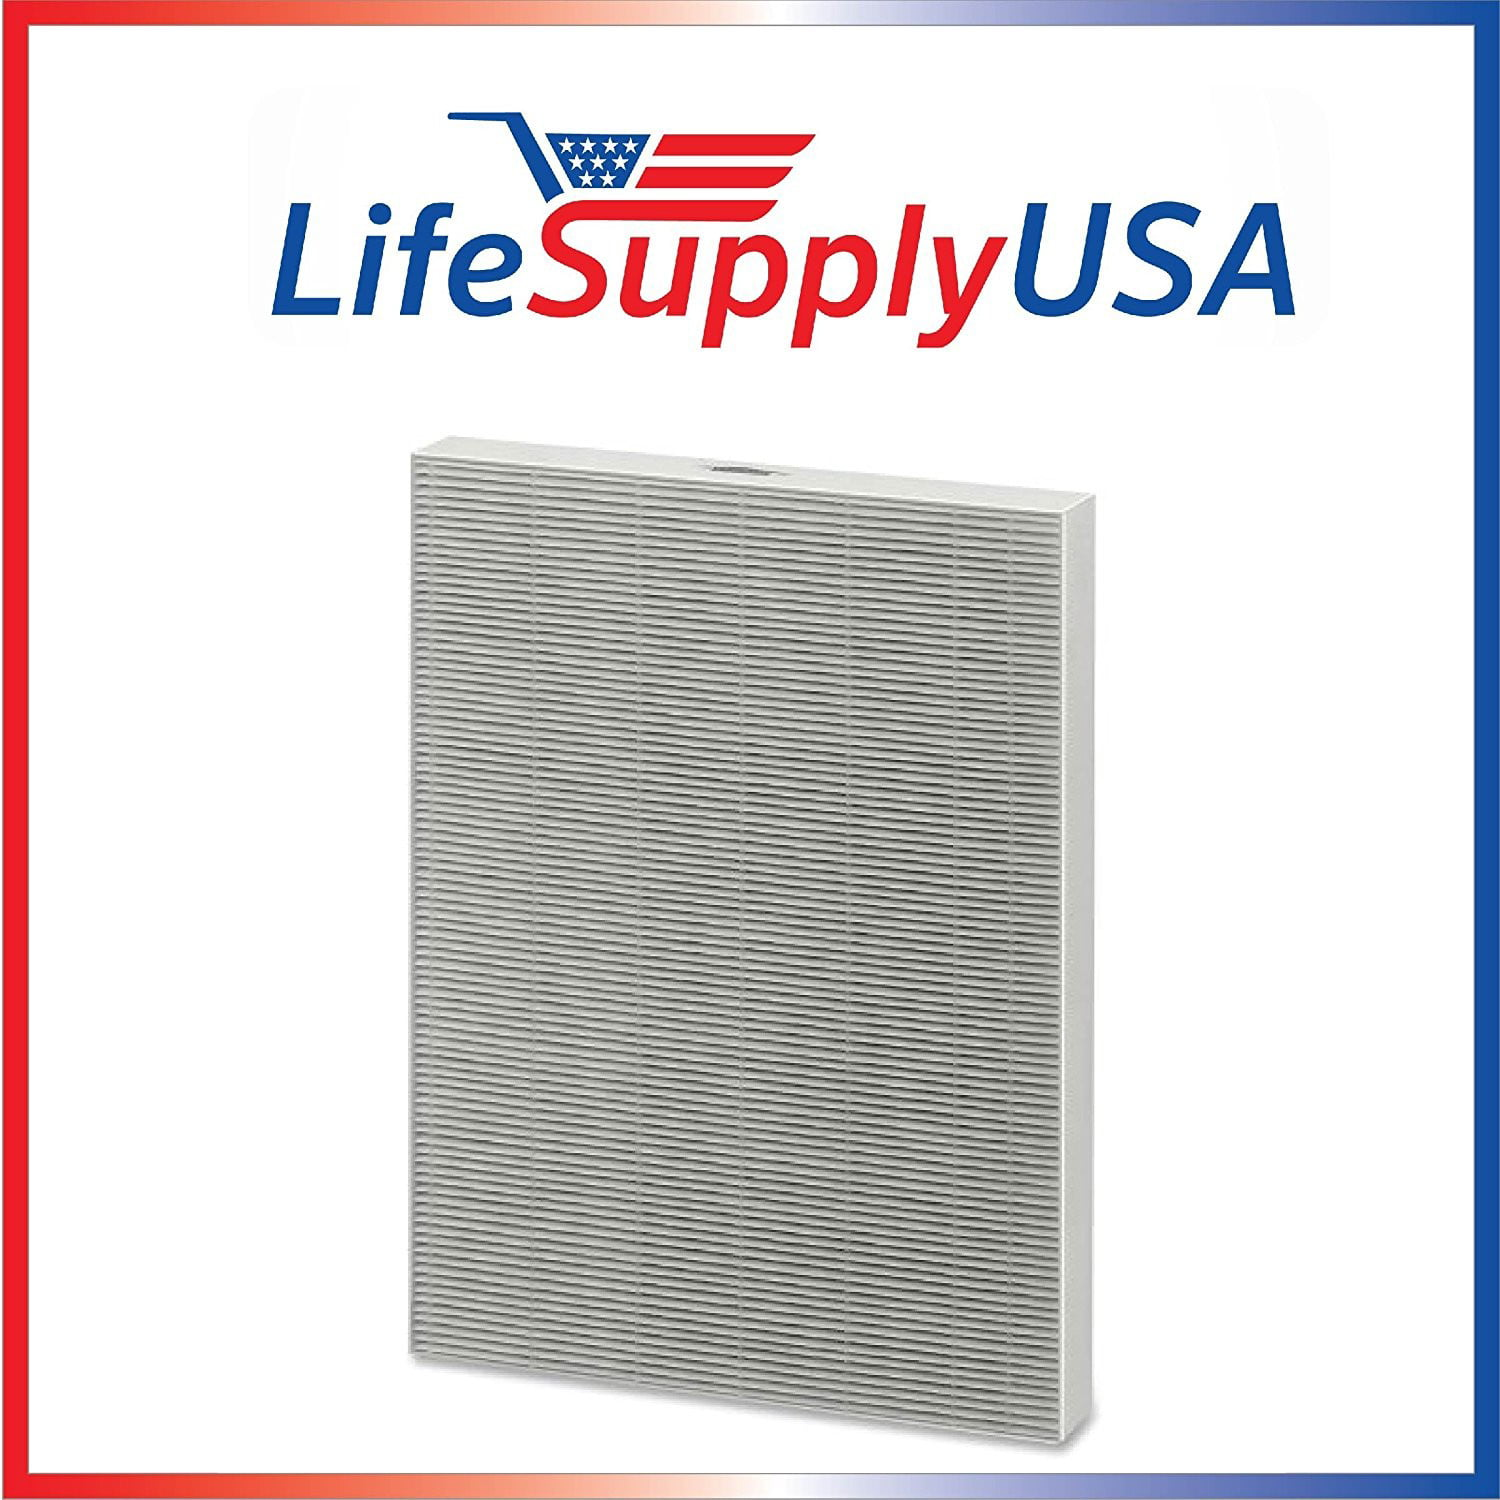 24 Rear Exhaust Filters for Electrolux Epic 2100 Vacuum